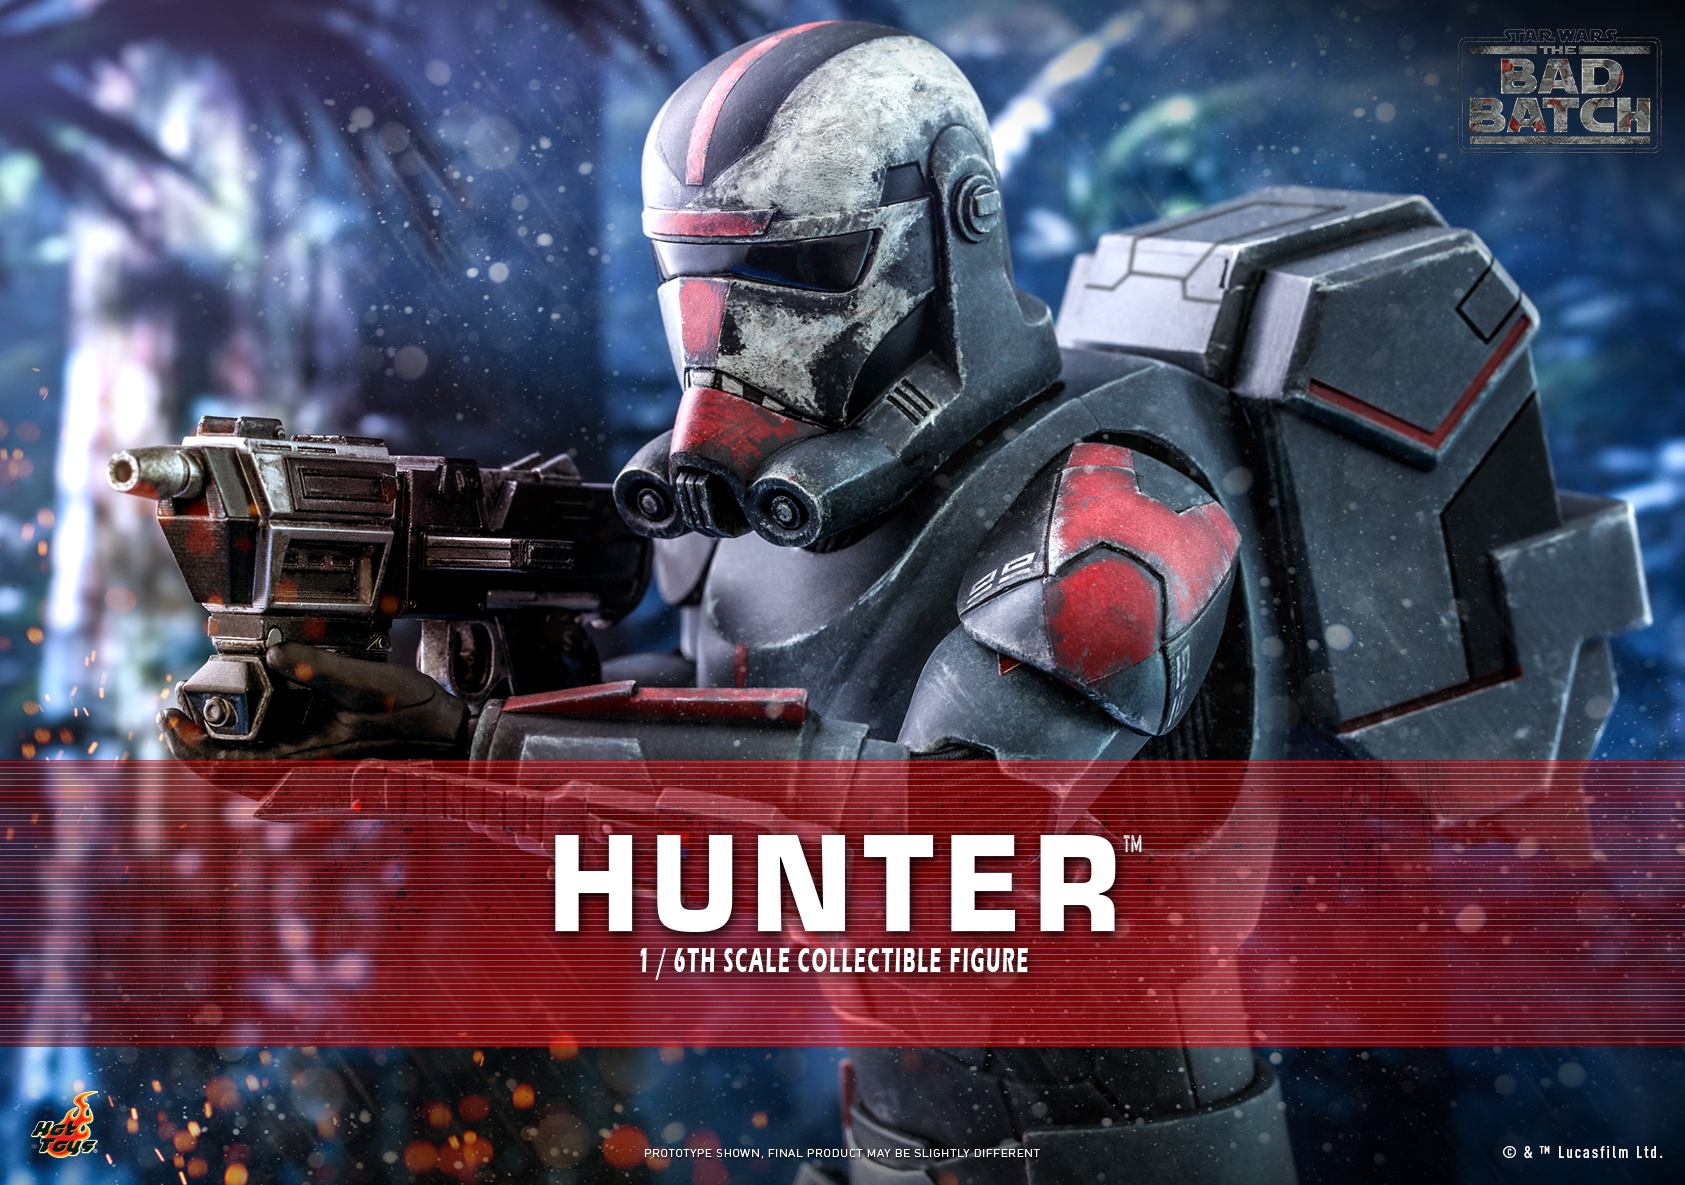 Hot Toys - Bad Batch - Hunter Collectible Figure_Poster